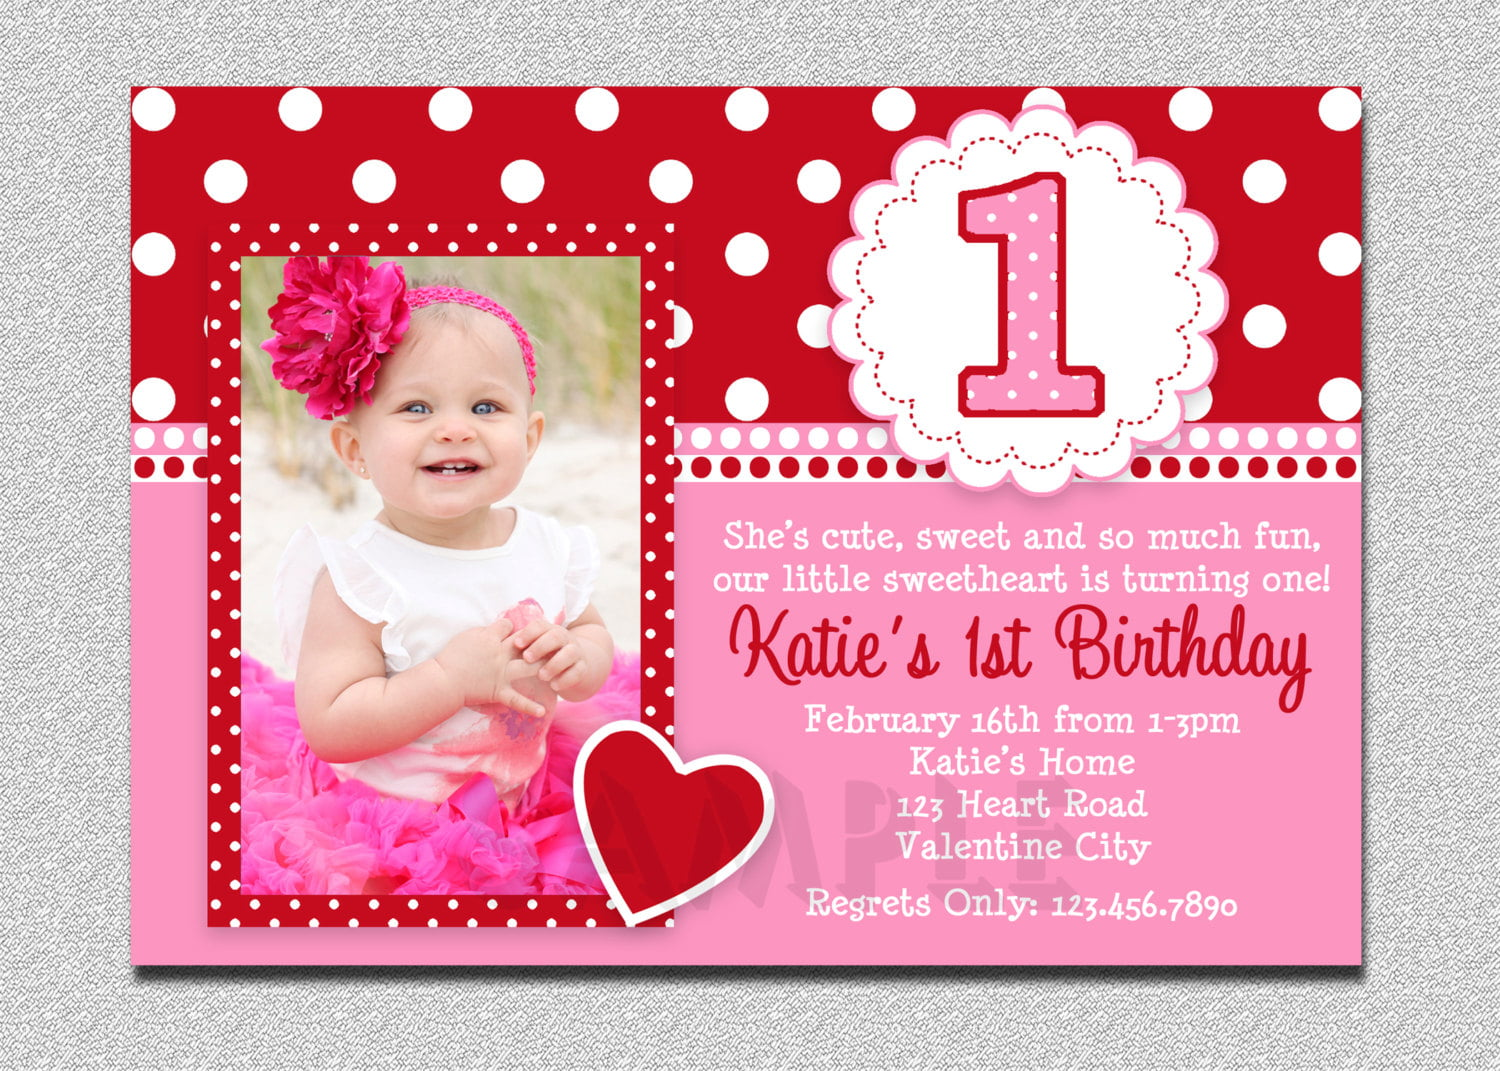 First Birthday Party Invitation Ideas Bagvania FREE Printable - One year birthday invitation template